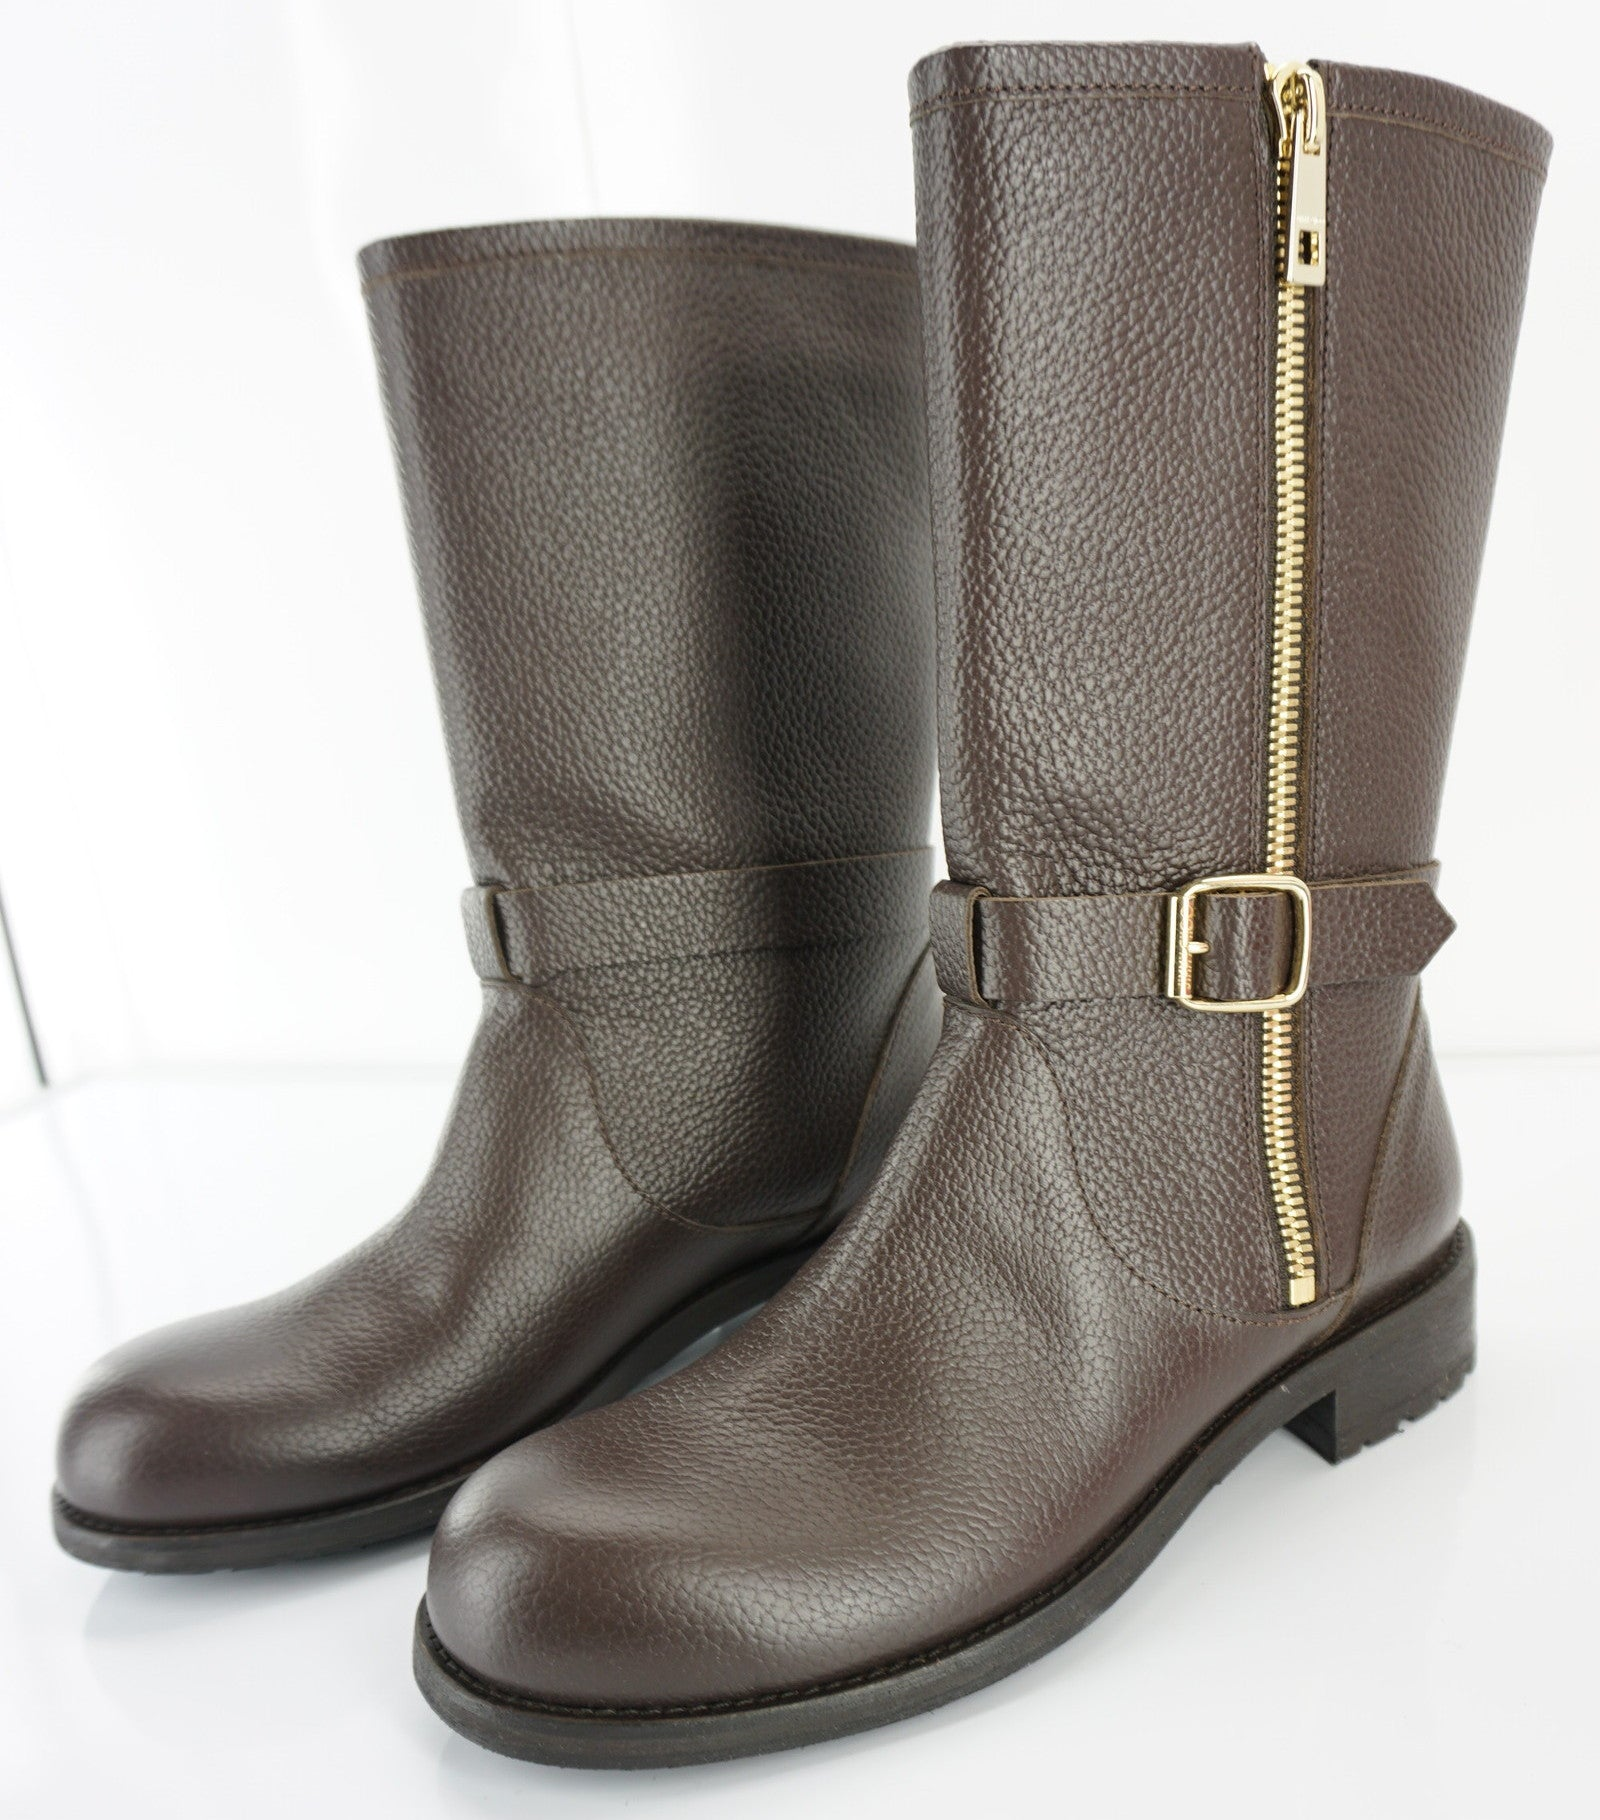 Jimmy Choo Durum Brown Leather Gold Side Zip Biker Boot SZ 40 10 NIB Moto $1095